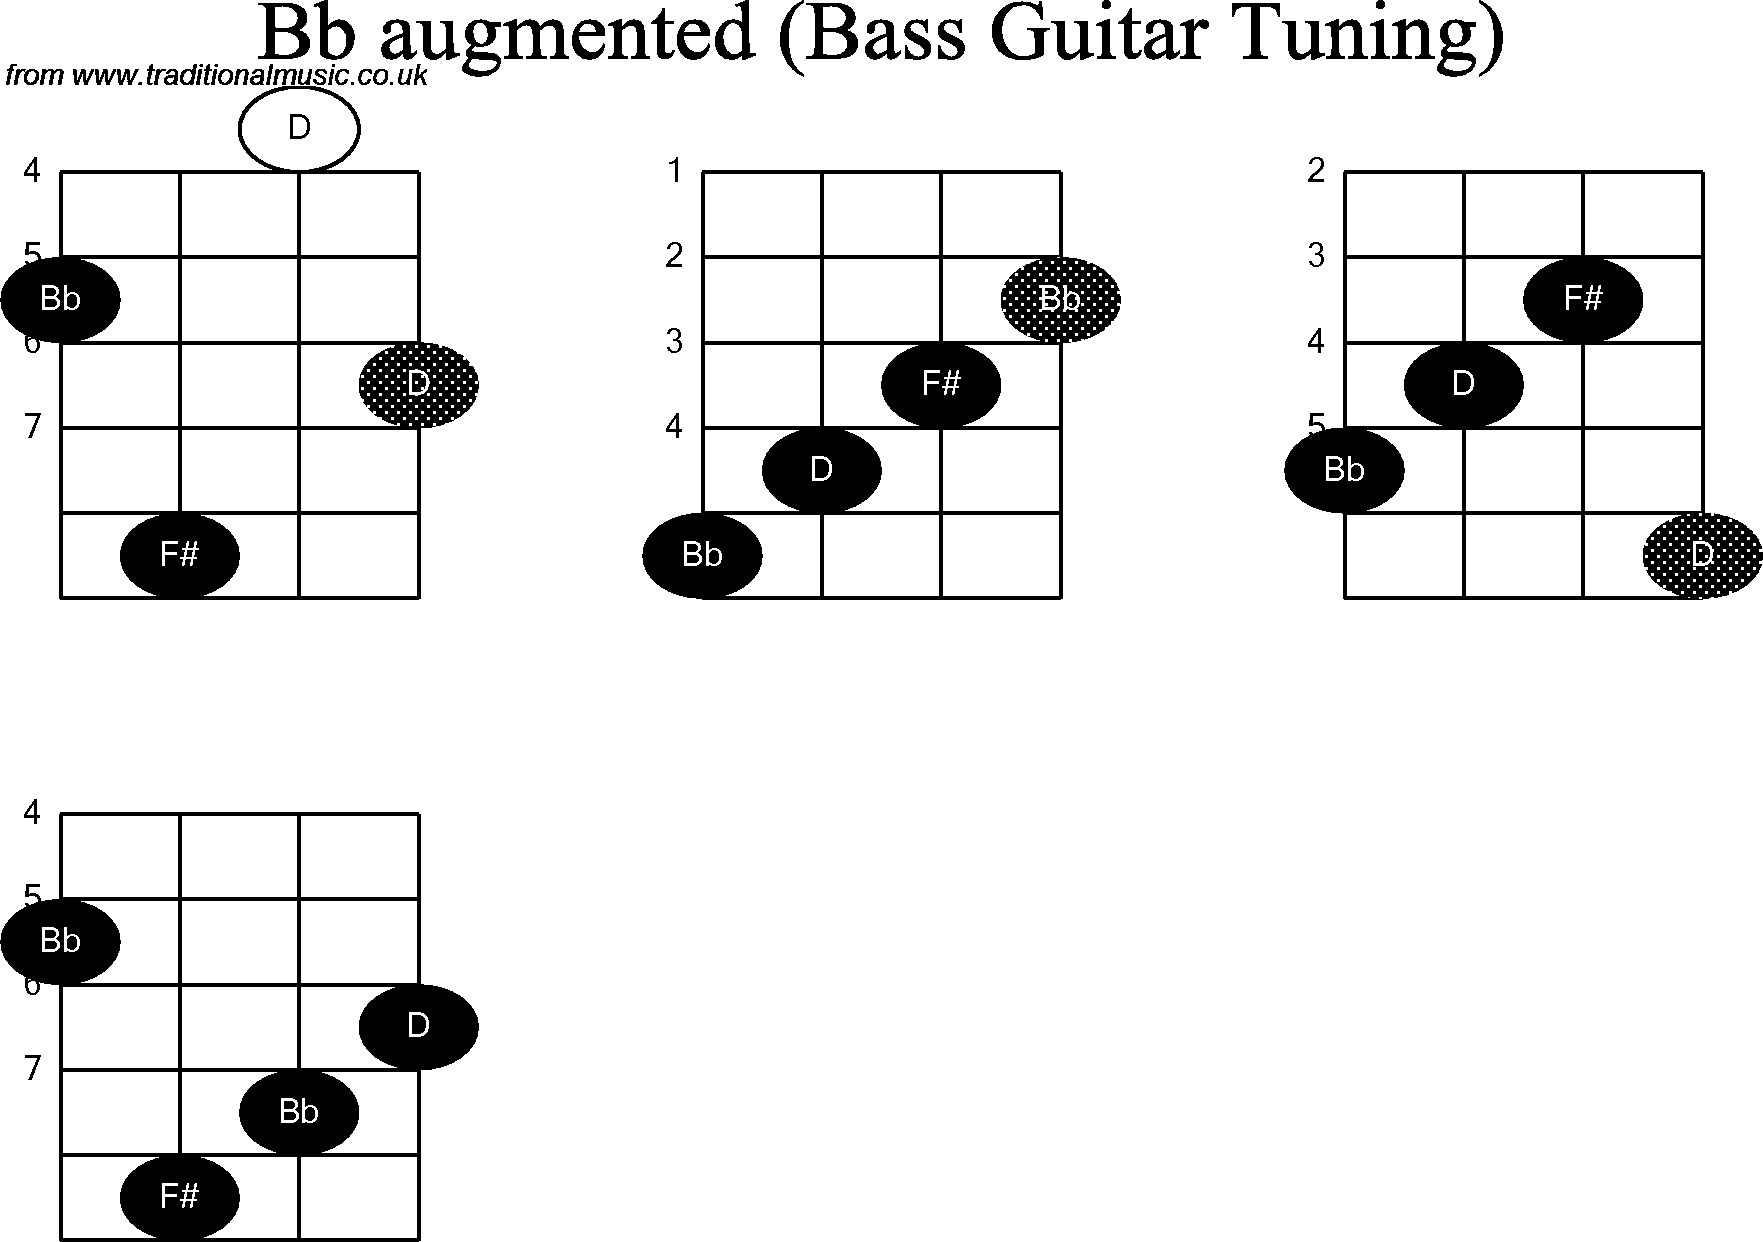 Bass Guitar Chord Diagrams For Bb Augmented